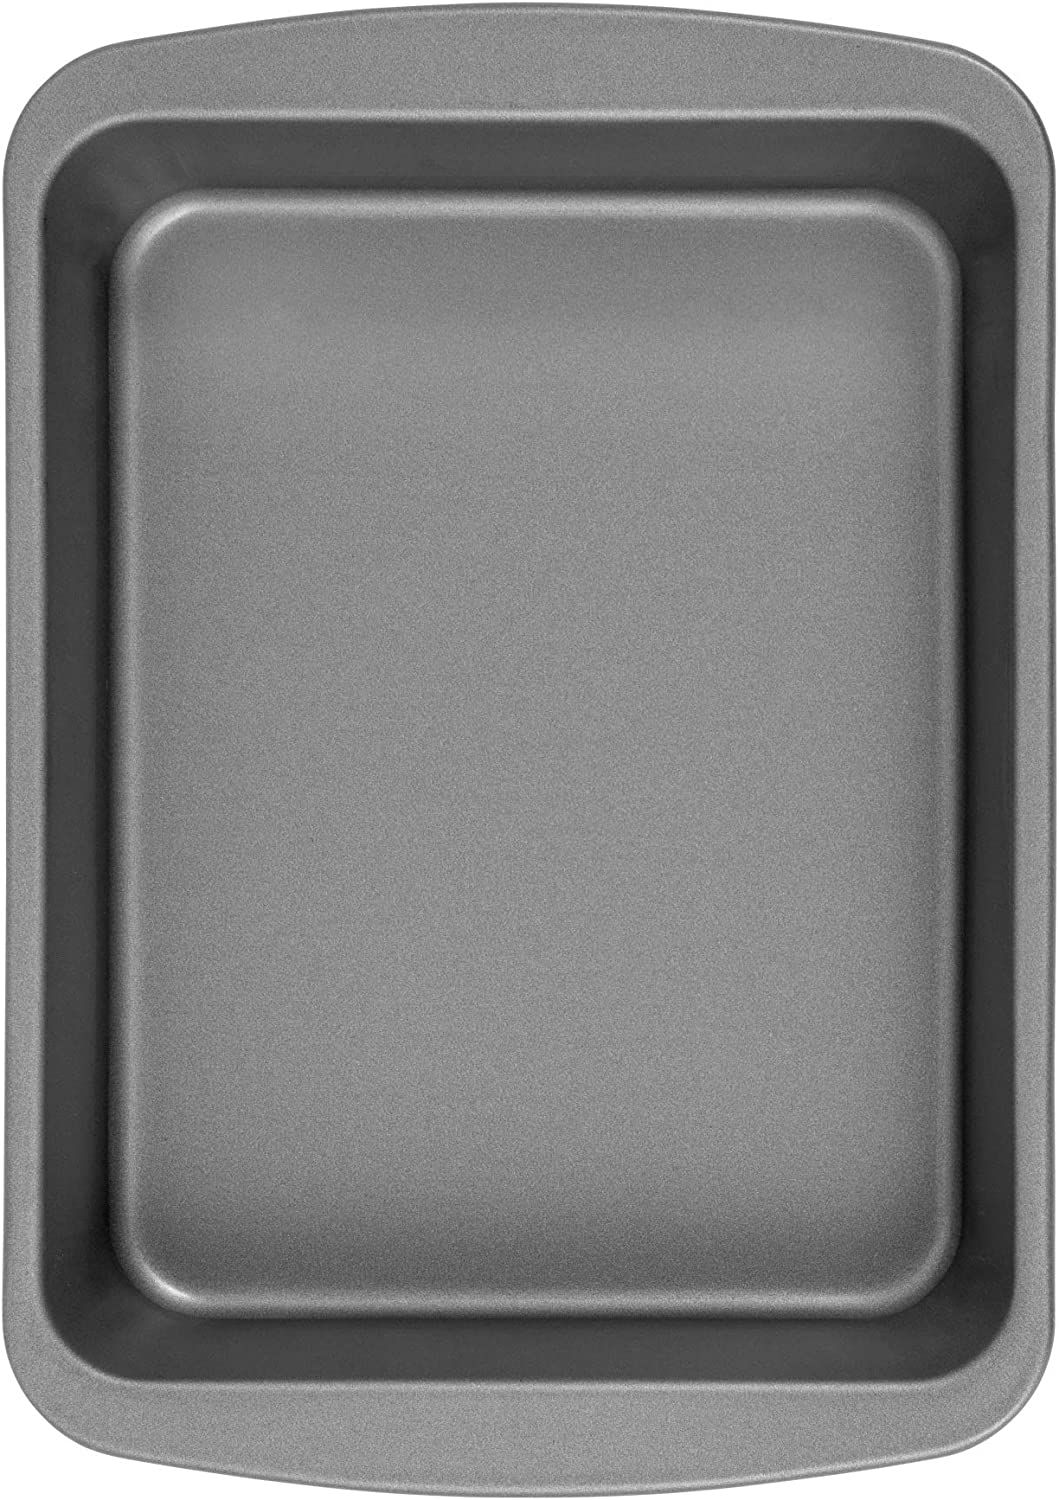 G & S Metal Products Company OvenStuff Nonstick Toaster Oven Bake and Roast Pan, 6.5 x 8.5 x 1.8 inches, Gray